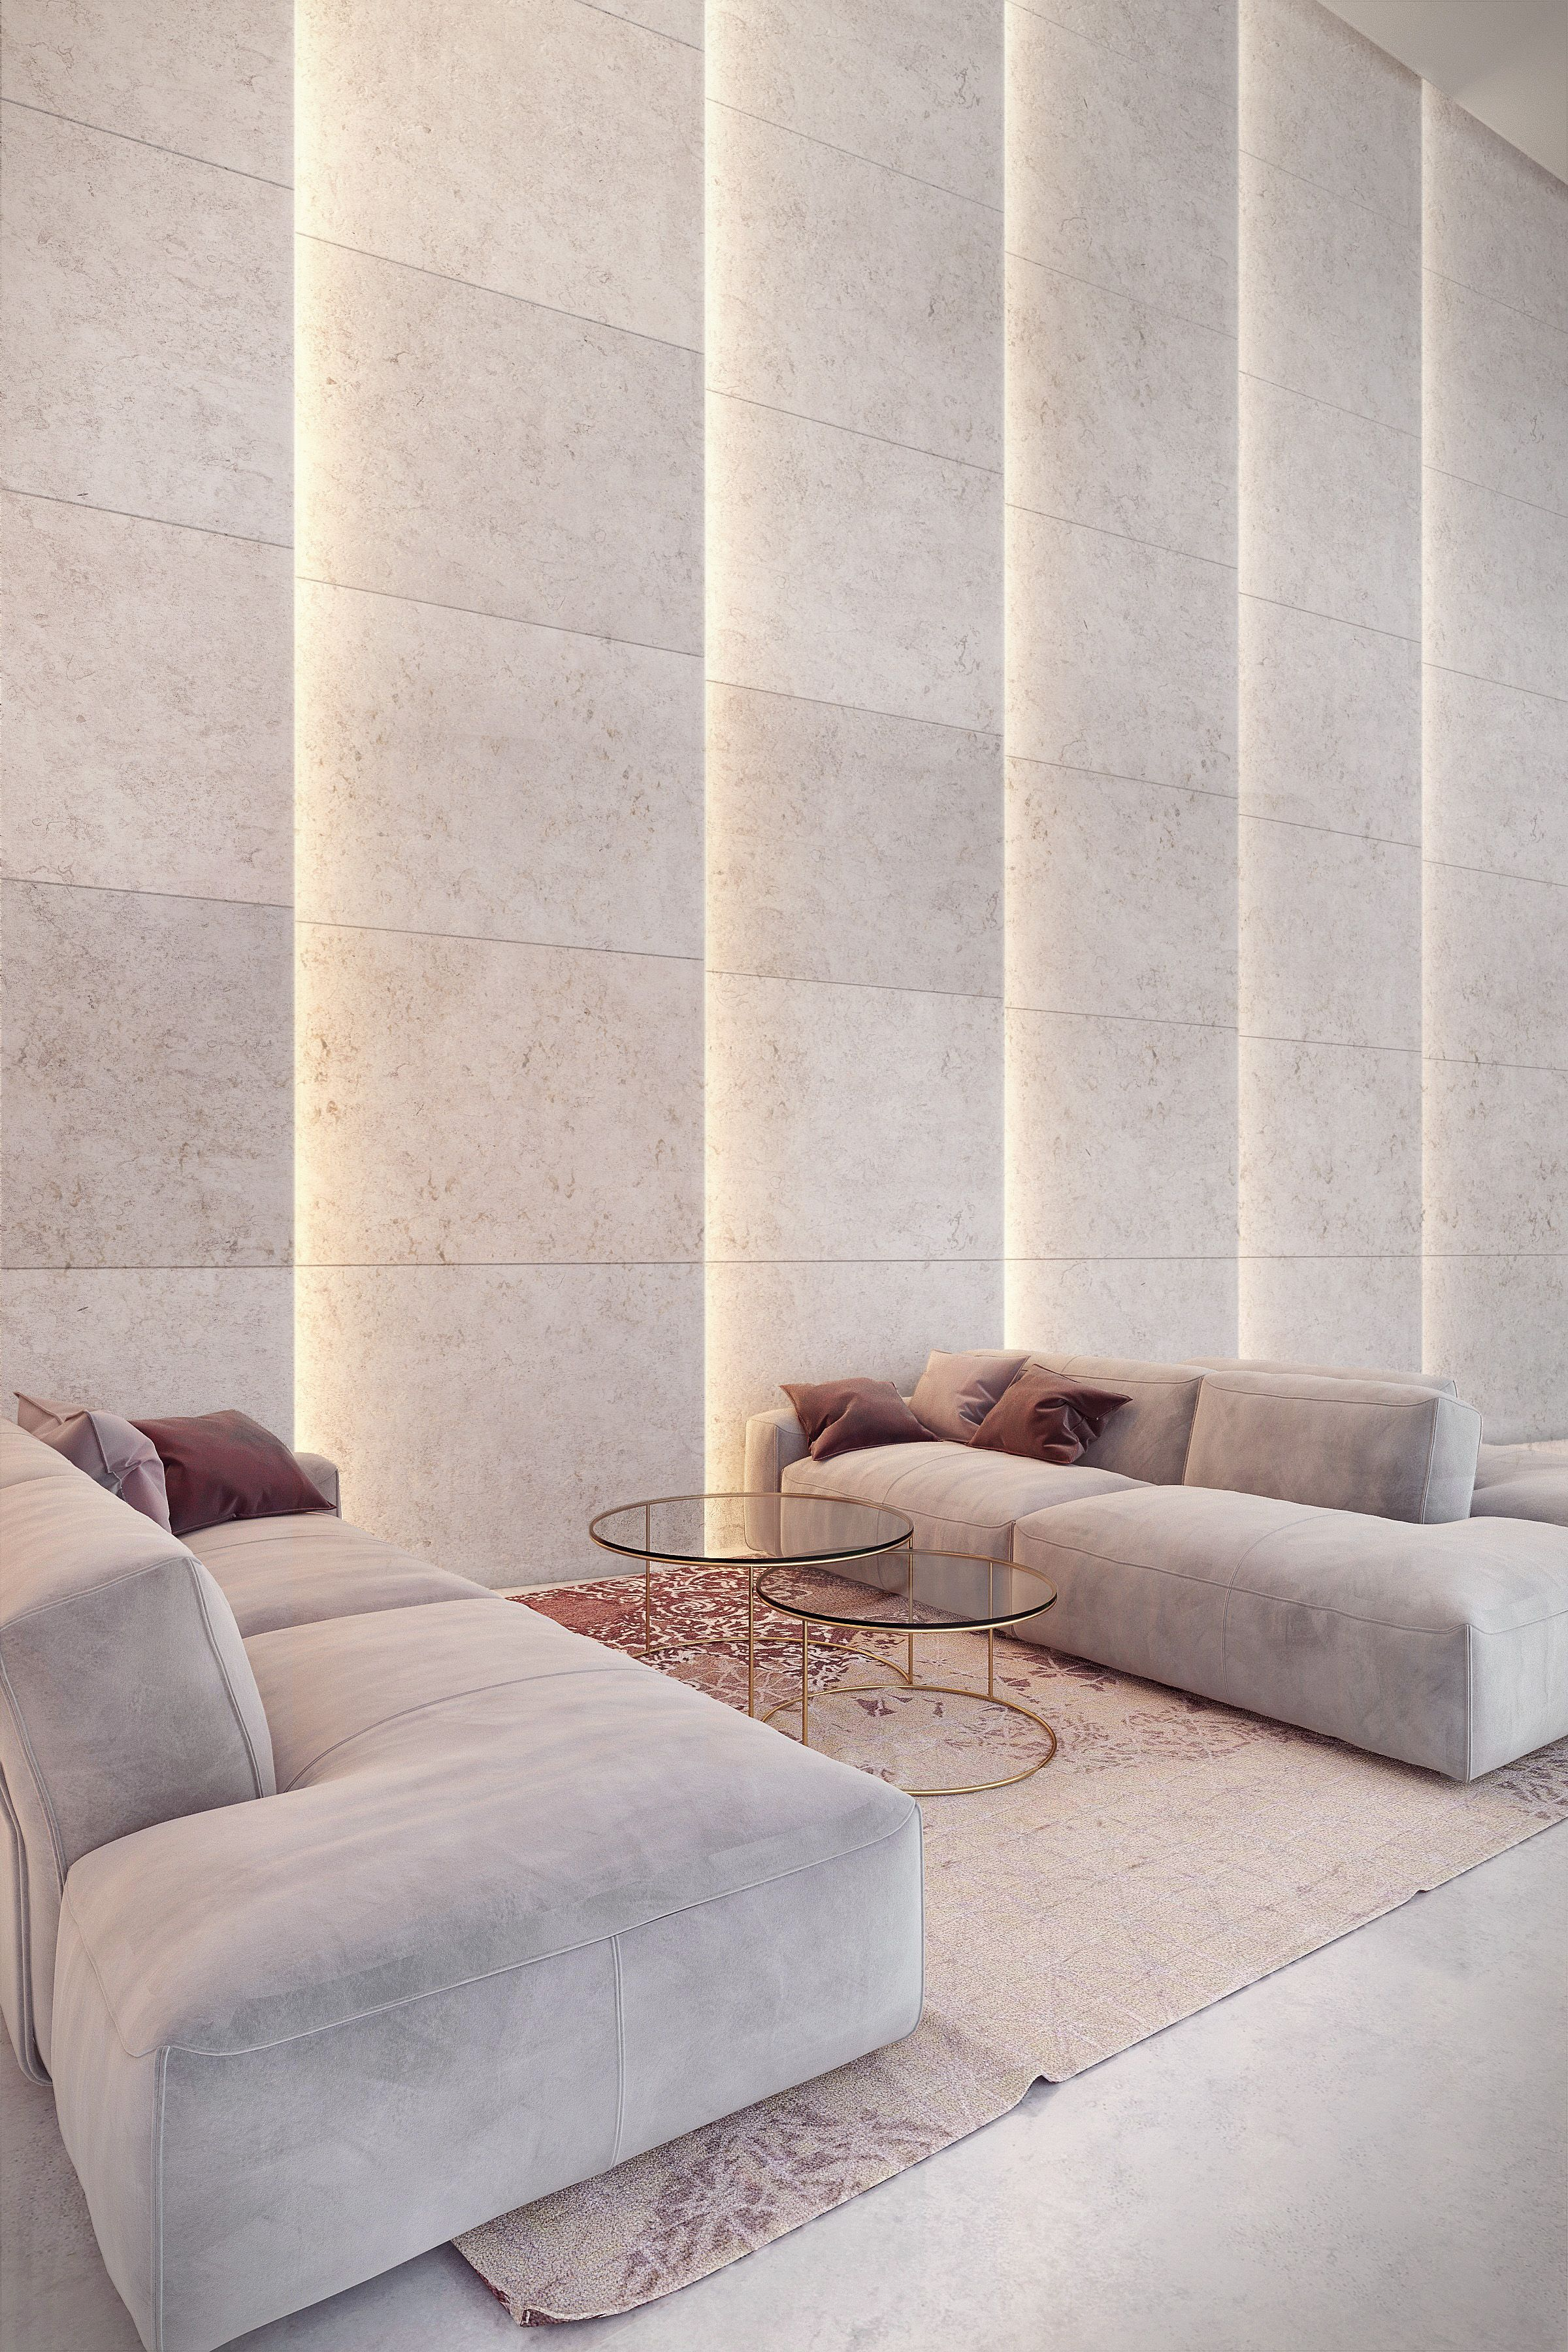 light in architecture travertine wall on behance